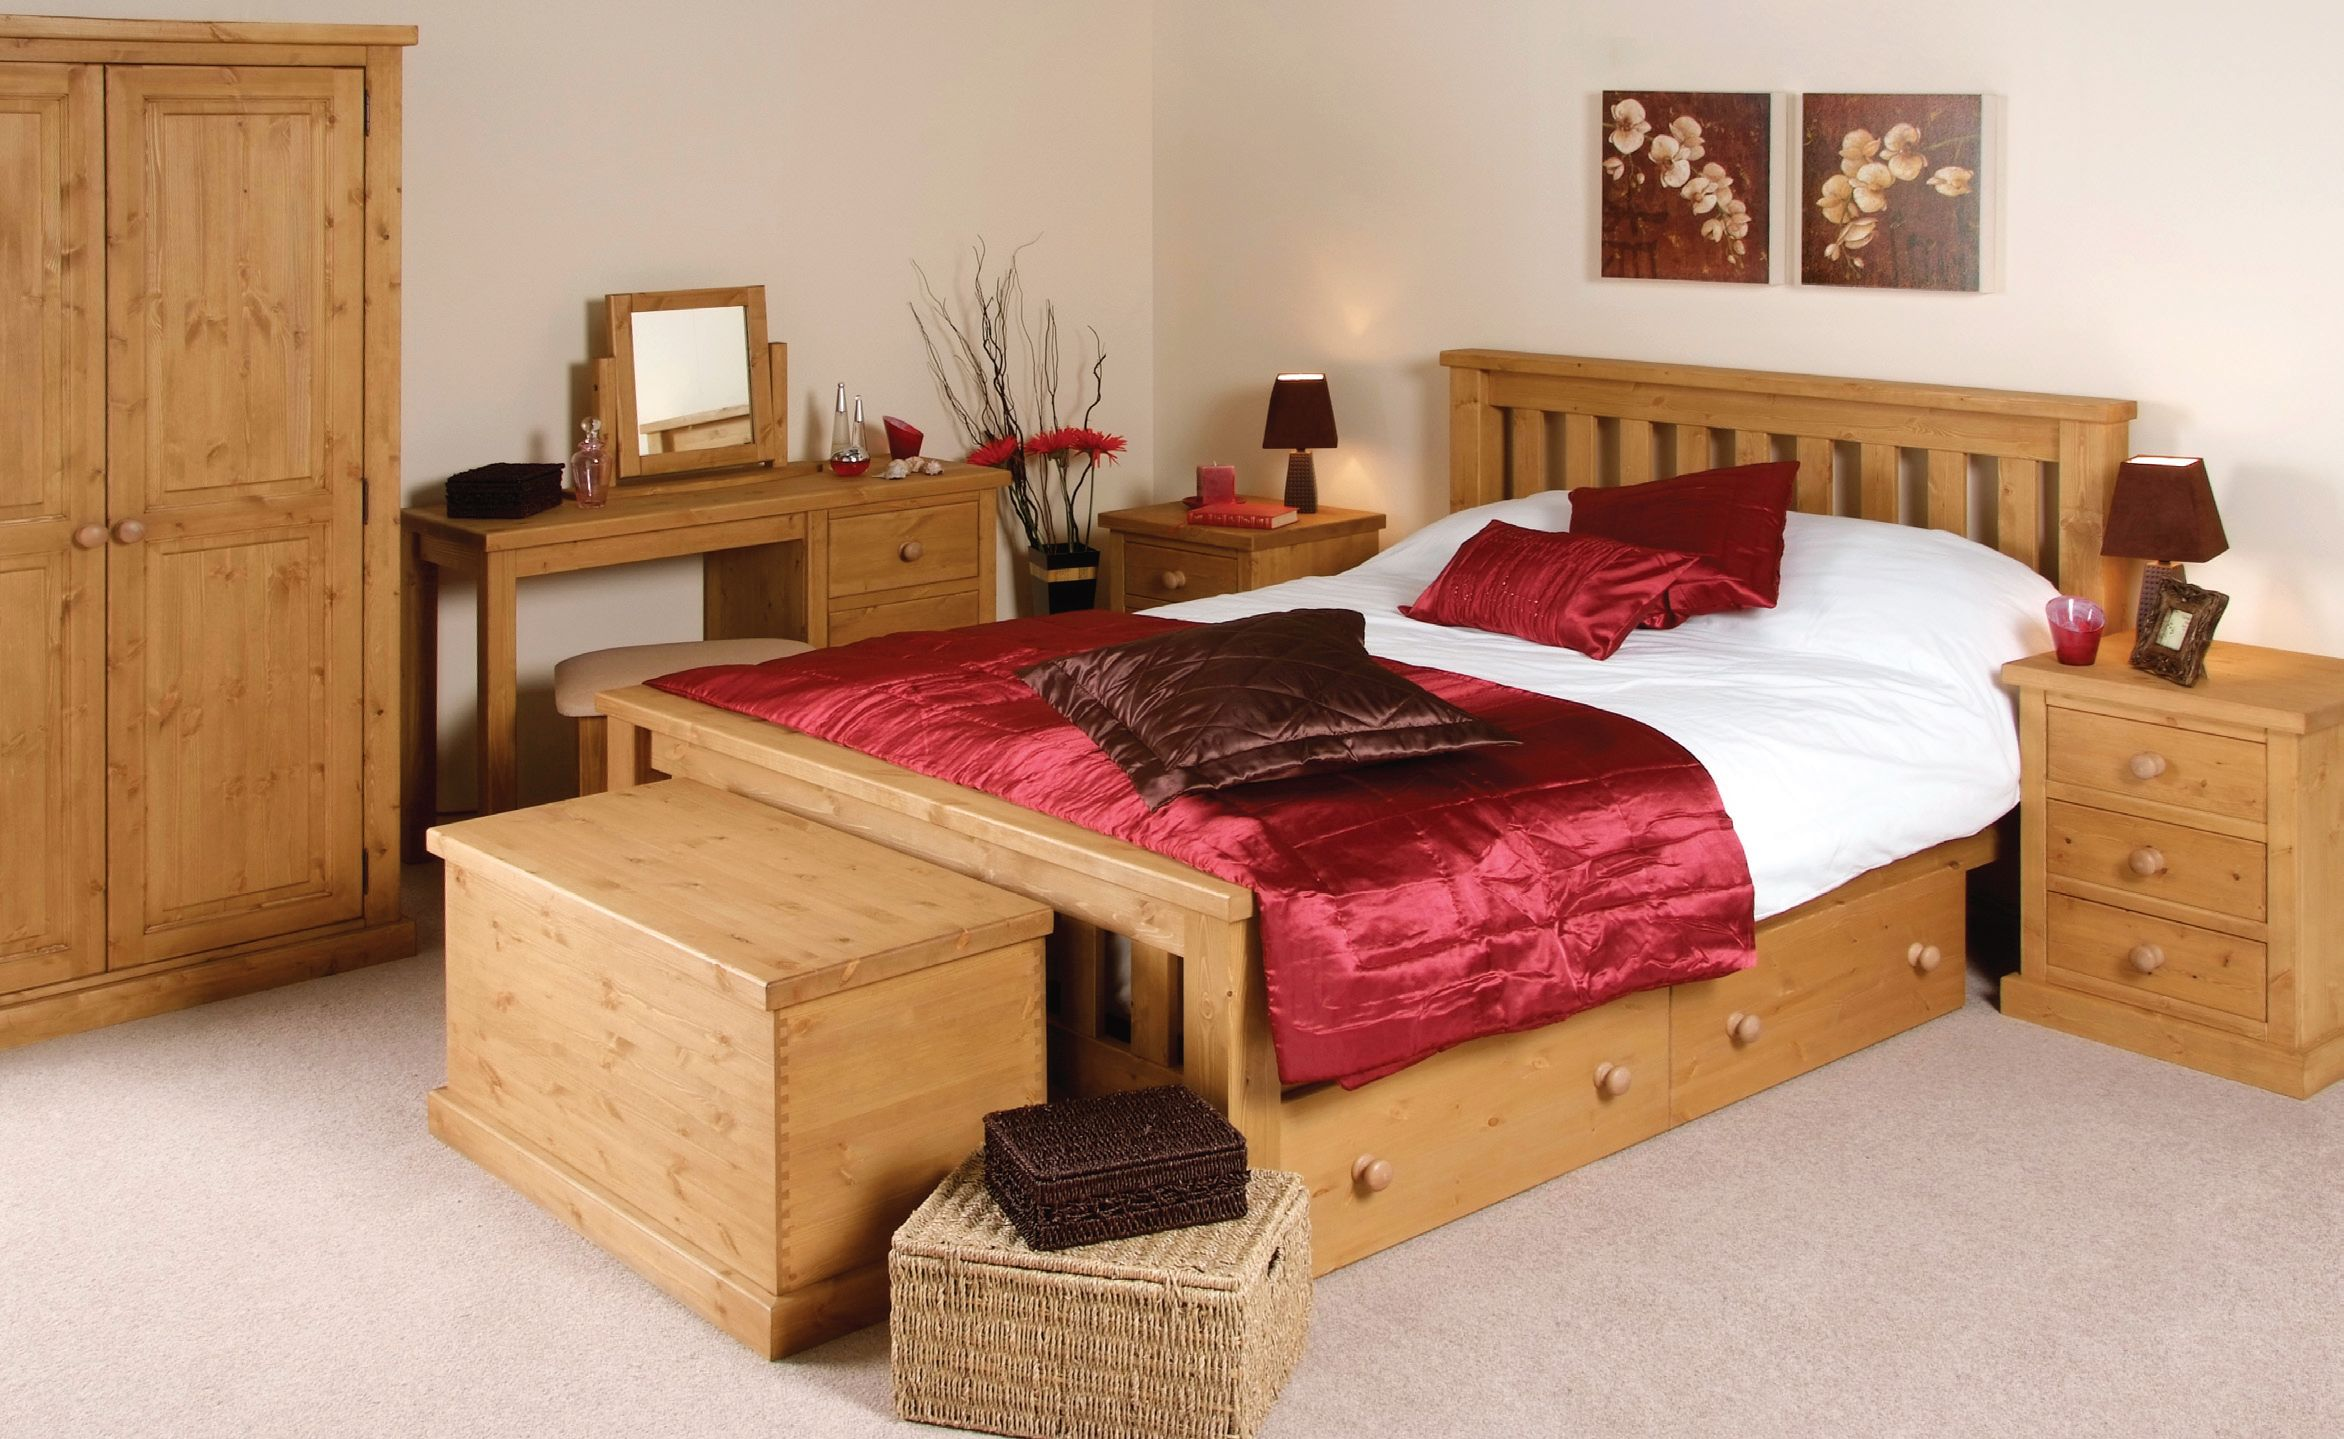 The Chunky Pine bedroom range is made from solid pine and